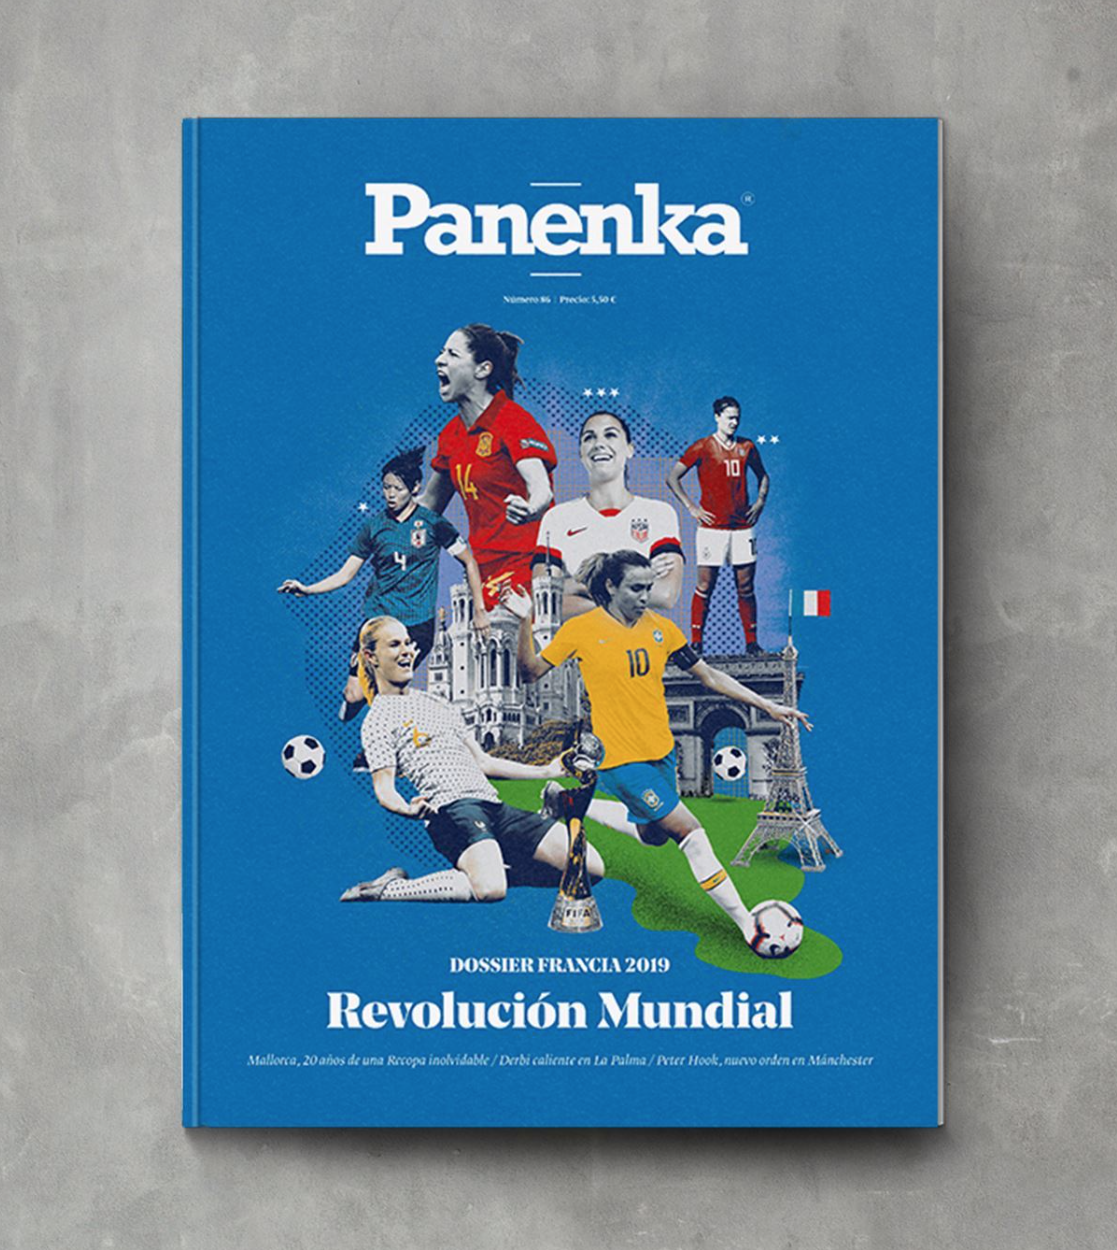 Panenka Magazine: Cover illustration